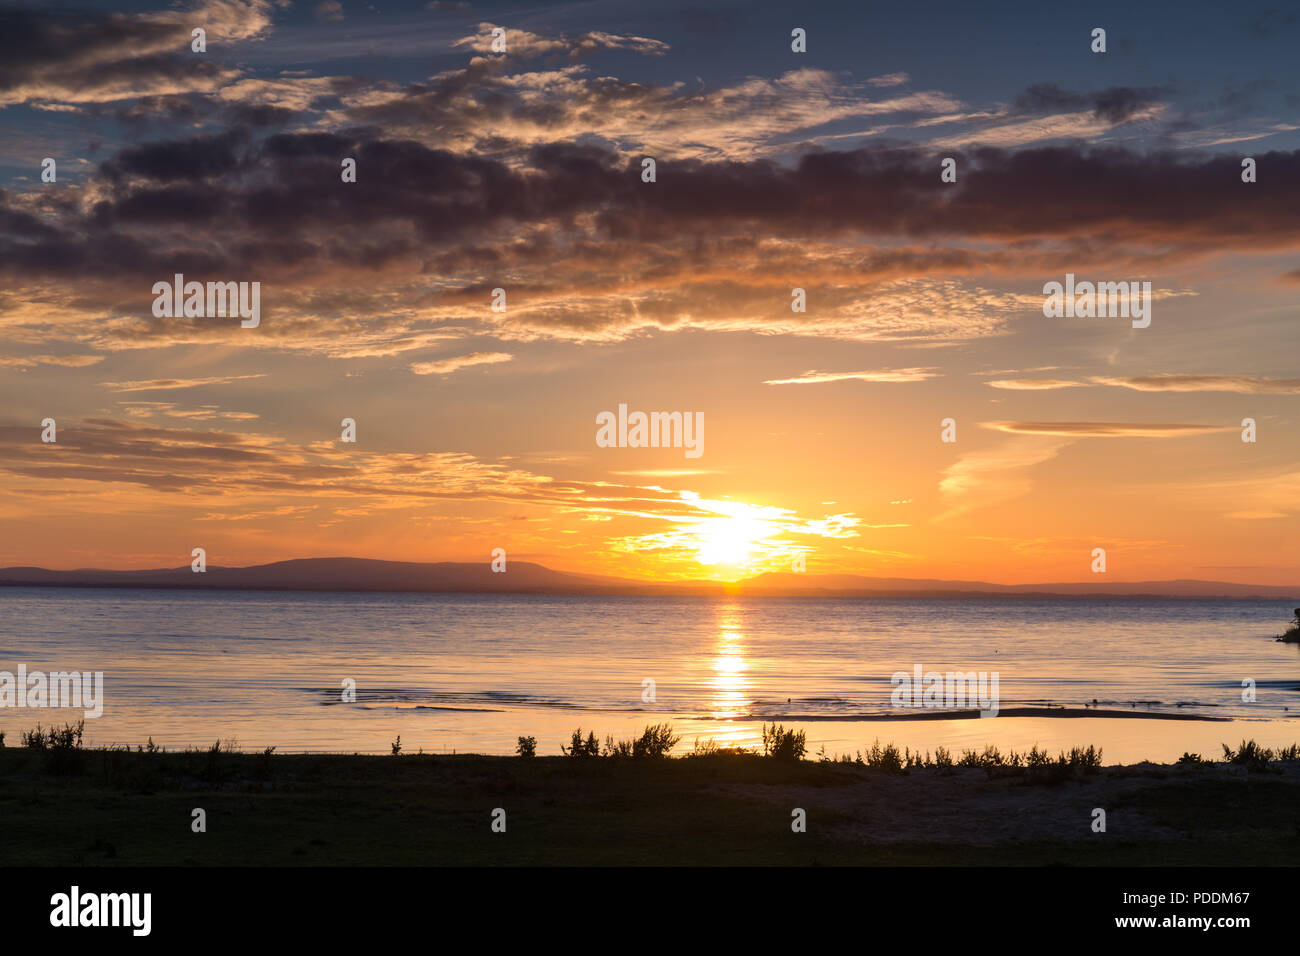 A beautiful sunset and skyscape over a lake, Lough Neagh, N.Ireland. - Stock Image